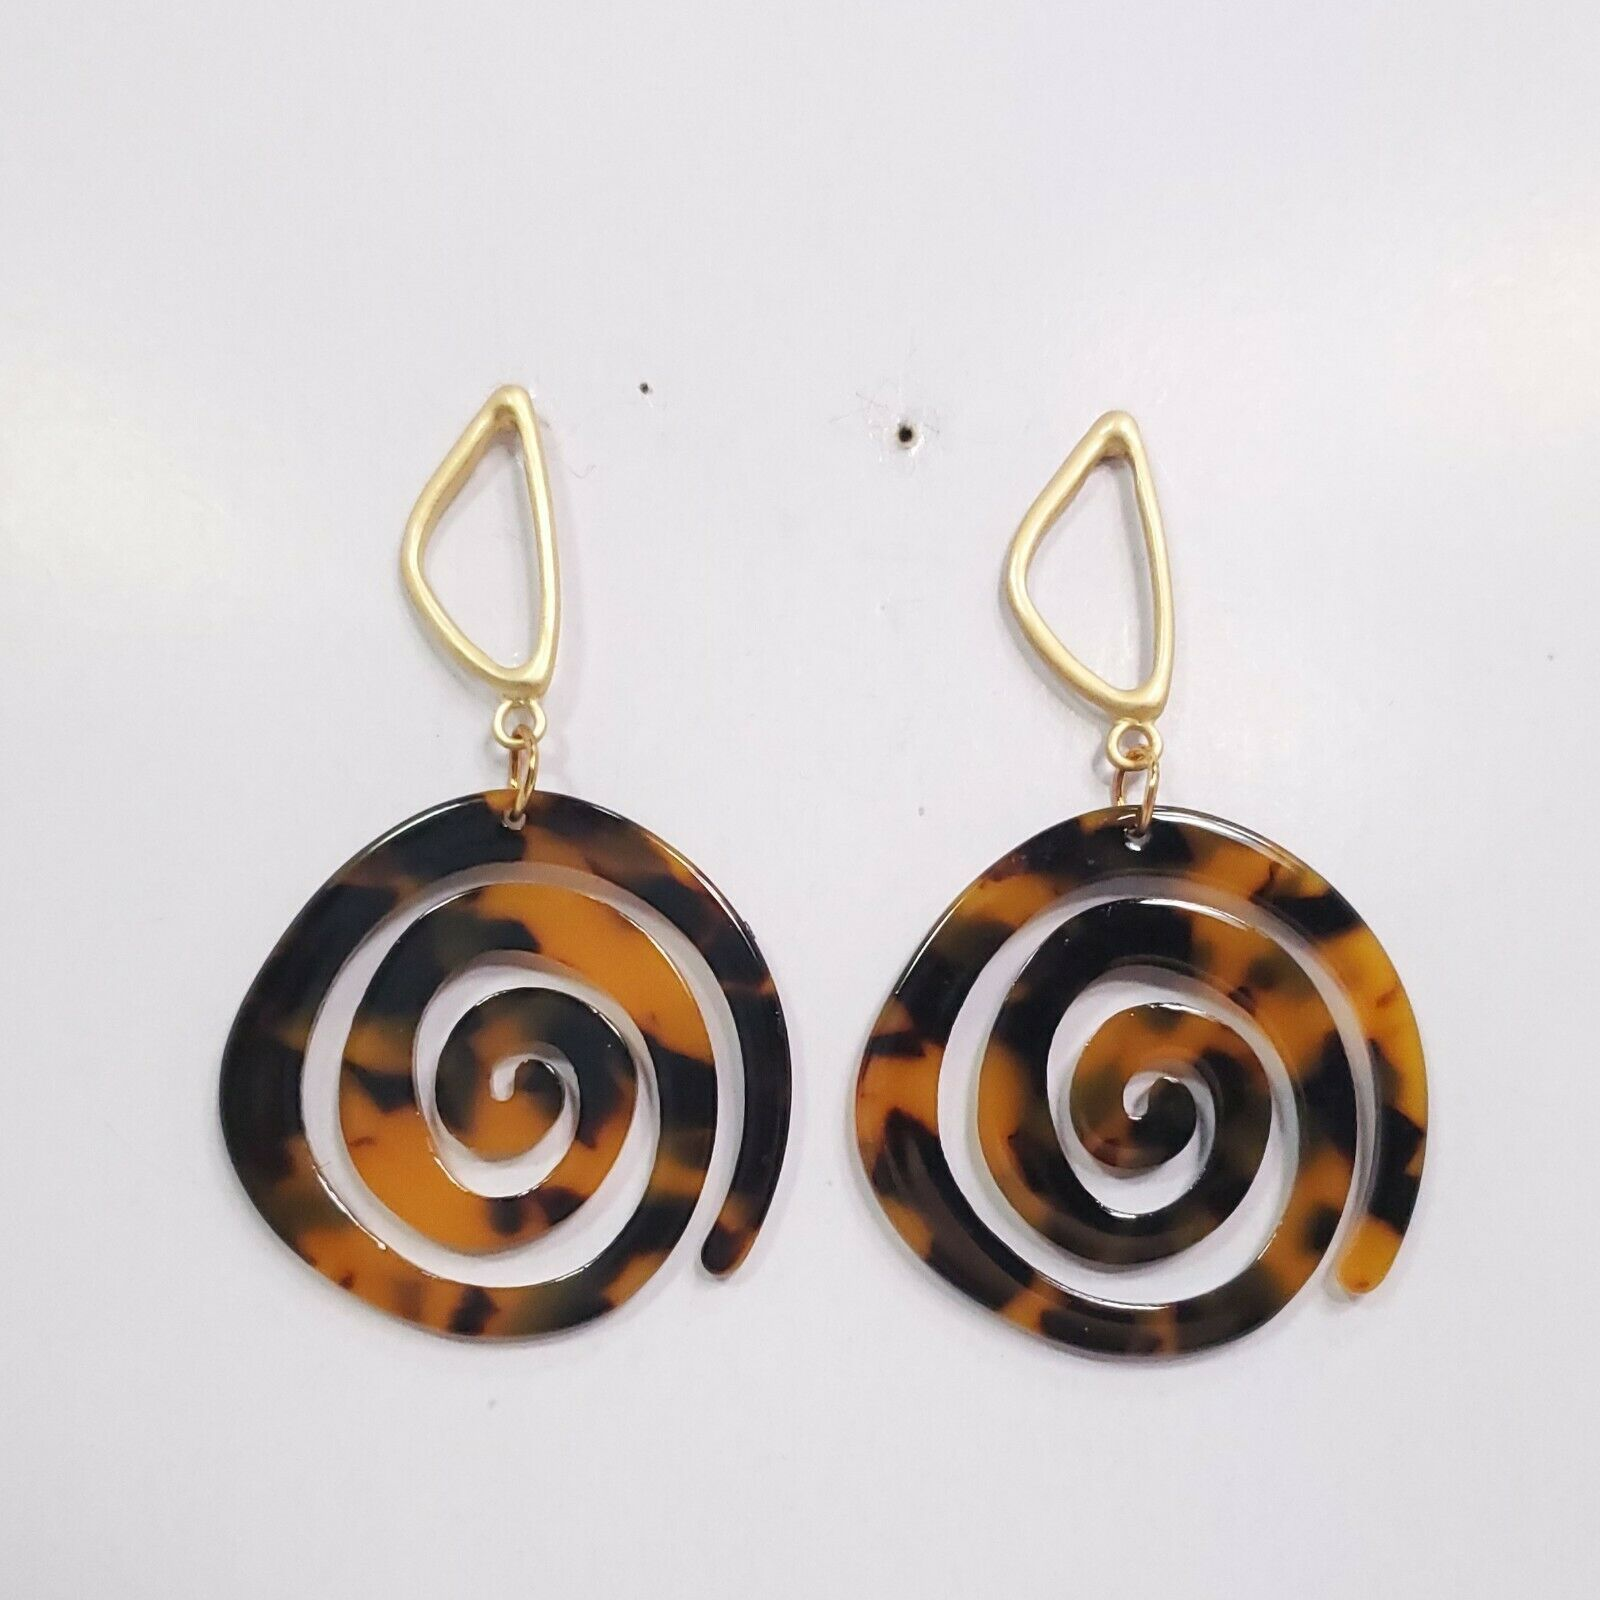 Primary image for E0270 Brown Tone Acrylic Circle Spiral Design Drop Dangle Fashion Post Earrings